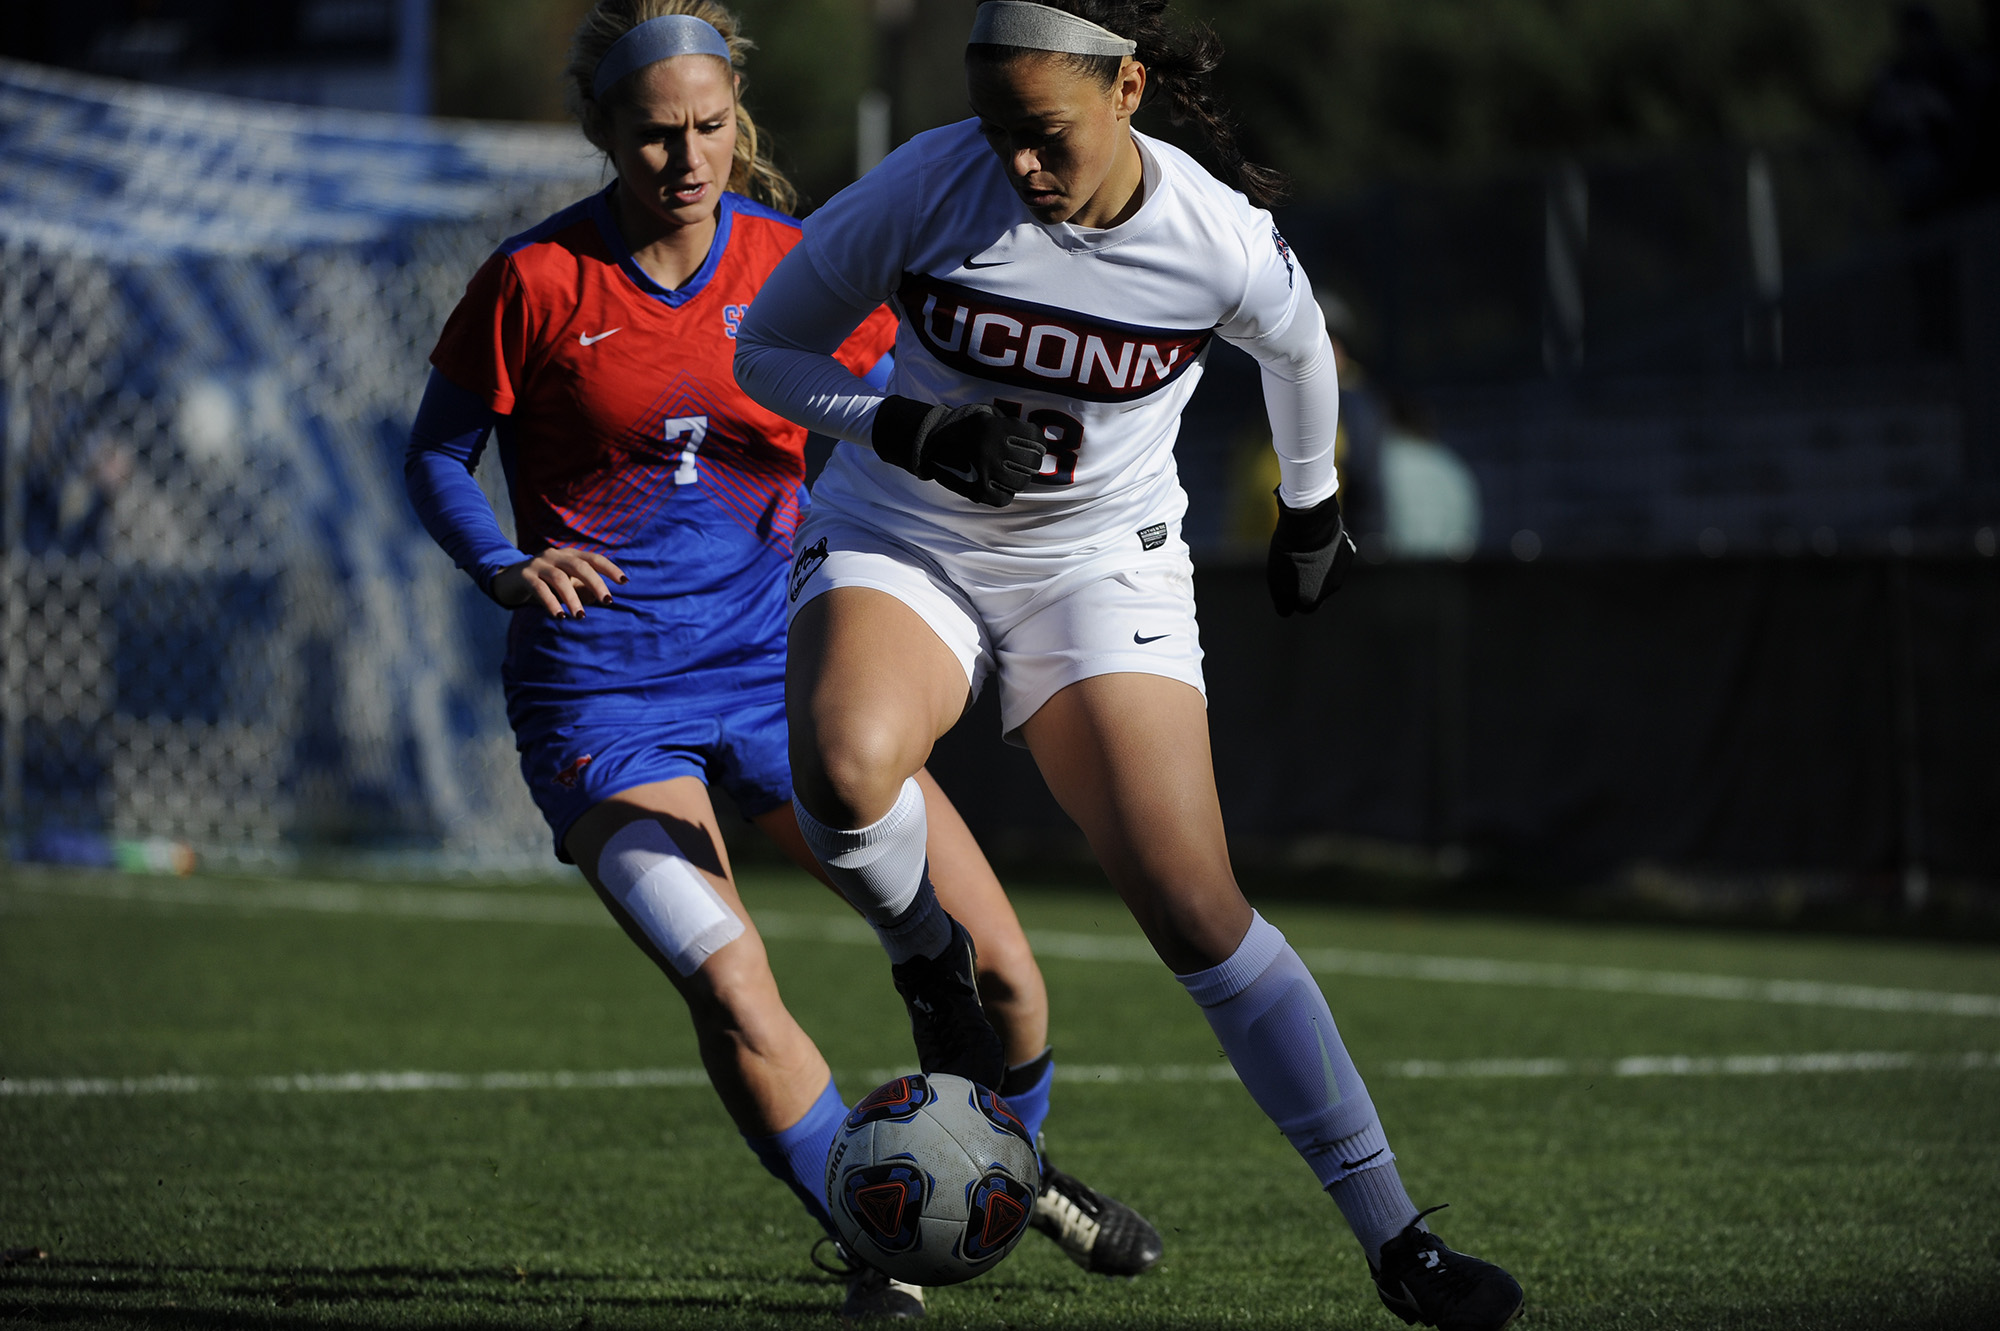 UConn senior Stephanie Ribeiro plays in the women's soccer championship final against SMU Nov 6, 2016. UConn won 4-2 and advanced to their next final game. Ribeiro has been listed as one of UConn's top performing athletes this fall by two of our writers. (Jason Jiang/ The Daily Campus)